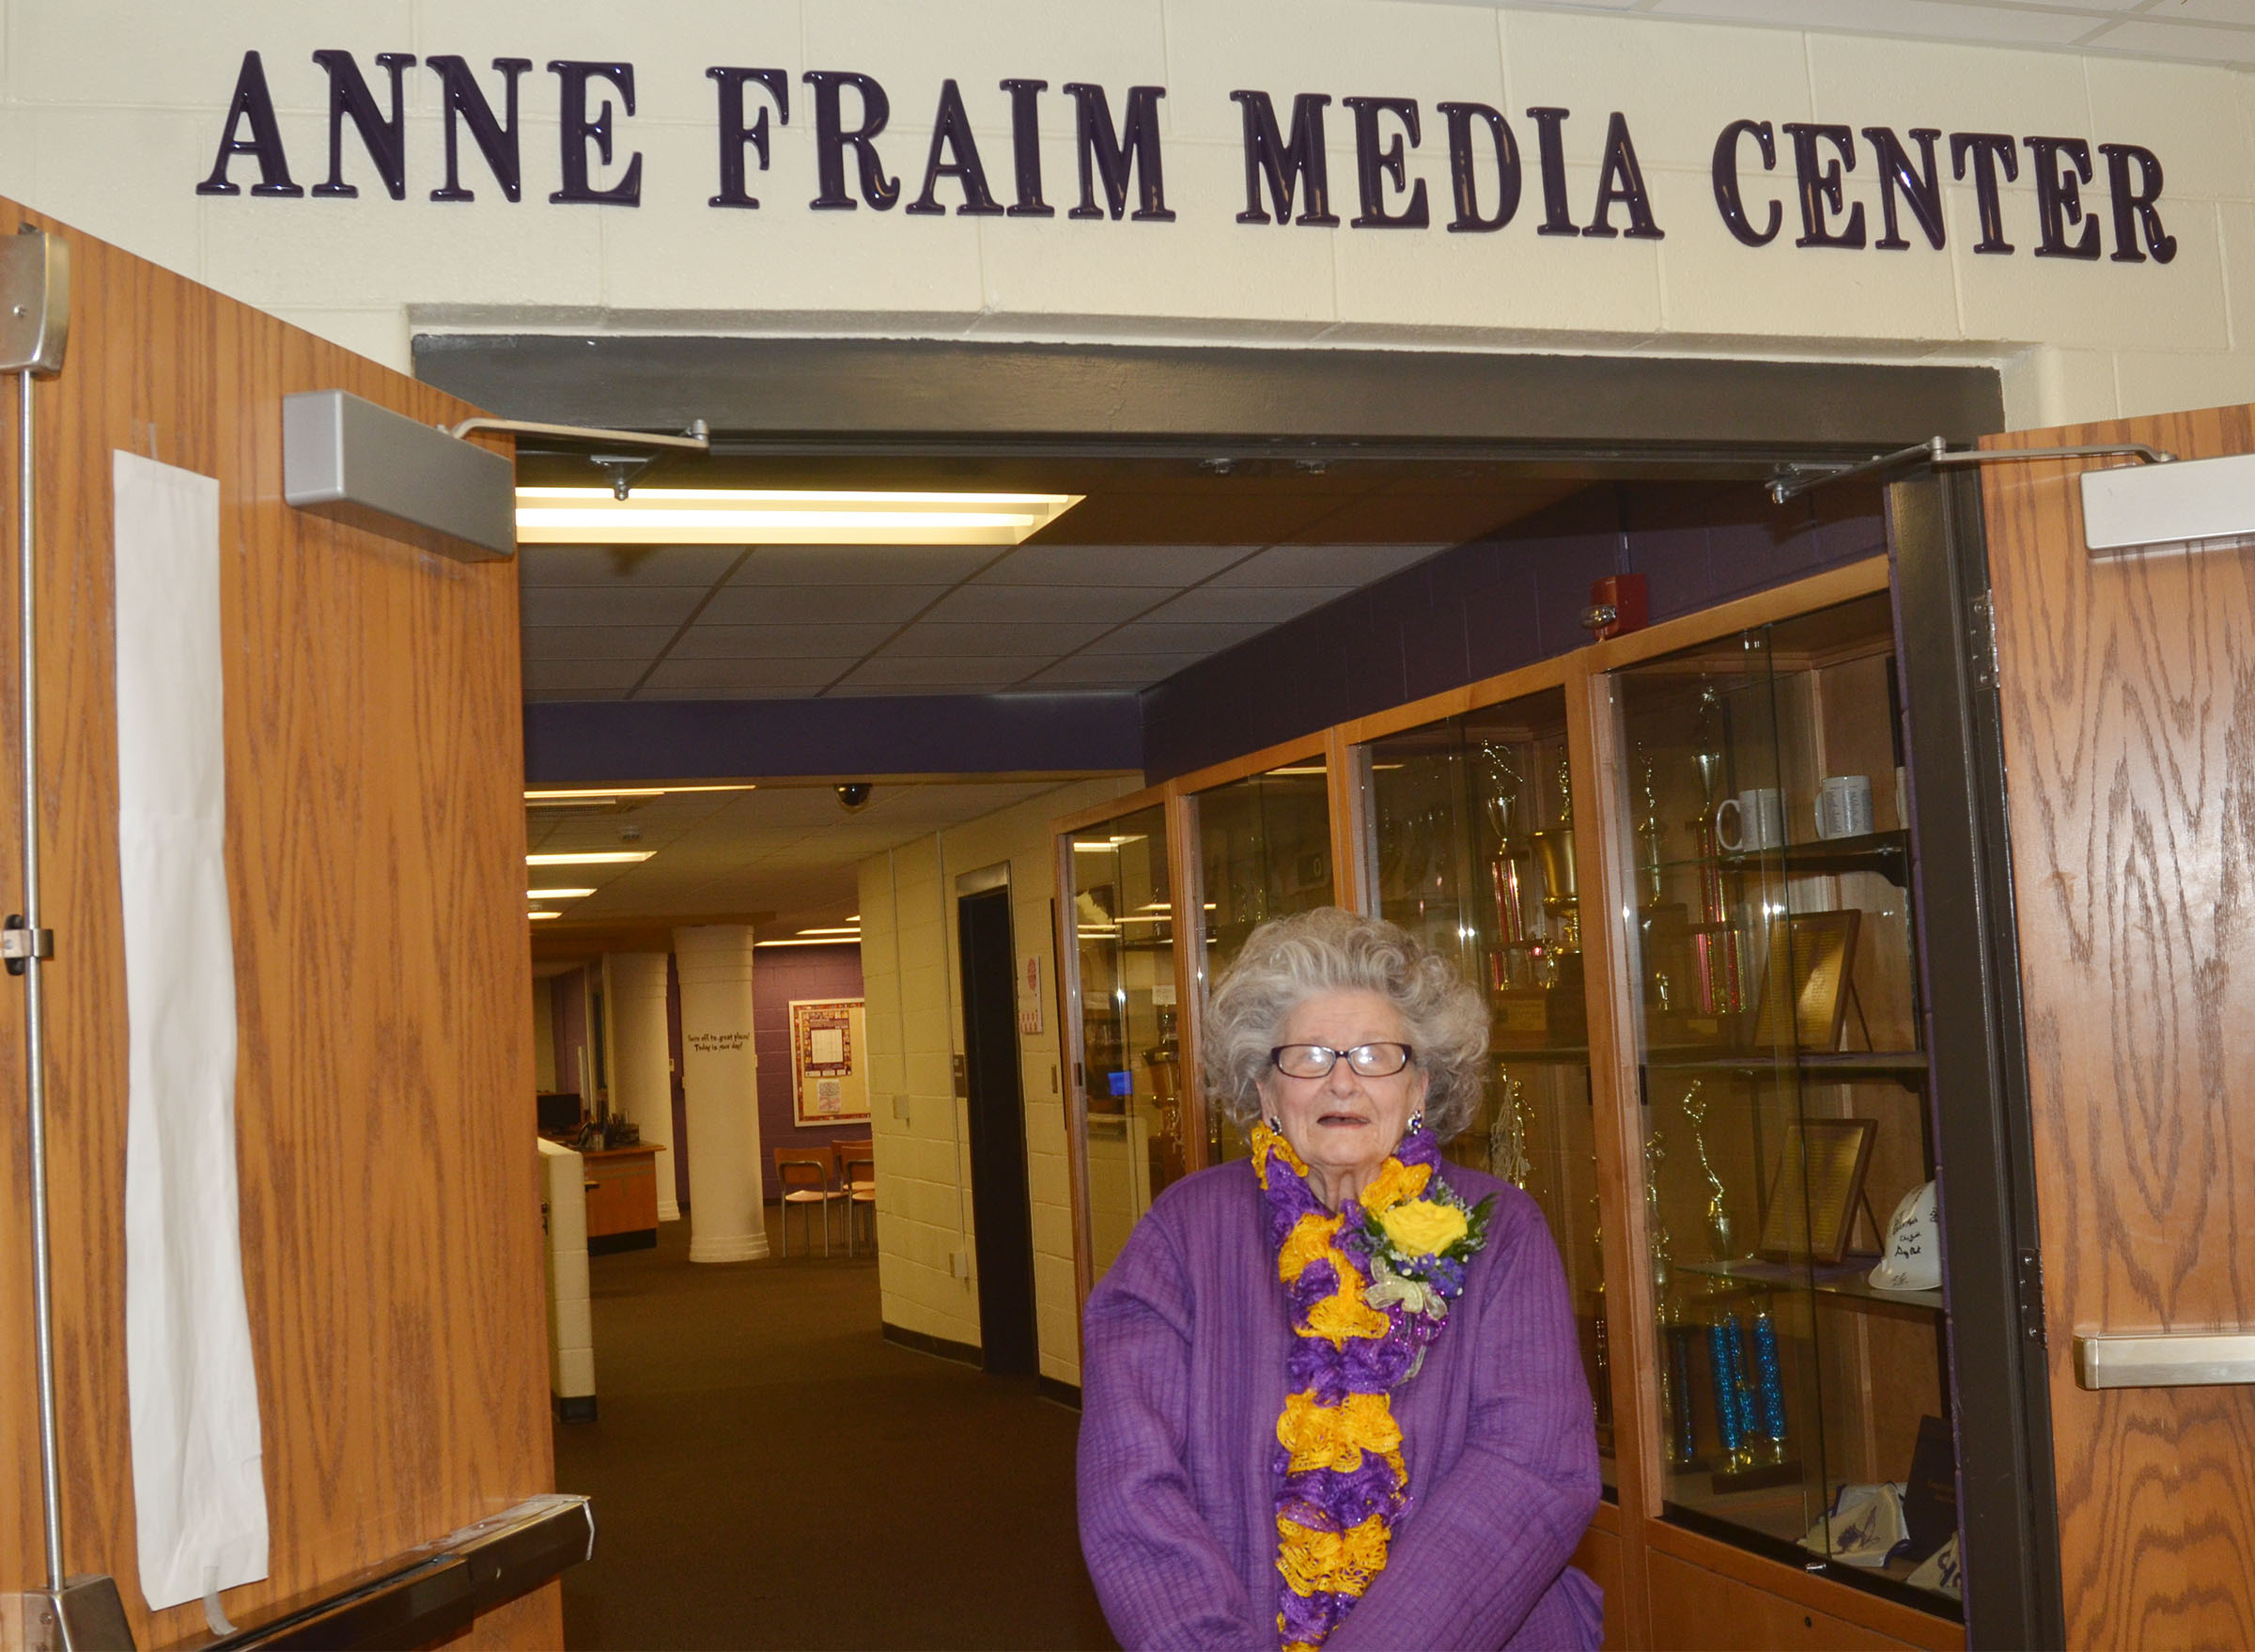 Former CHS employee Anne Fraim poses for a photo outside the newly dedicated Anne Fraim Media Center.